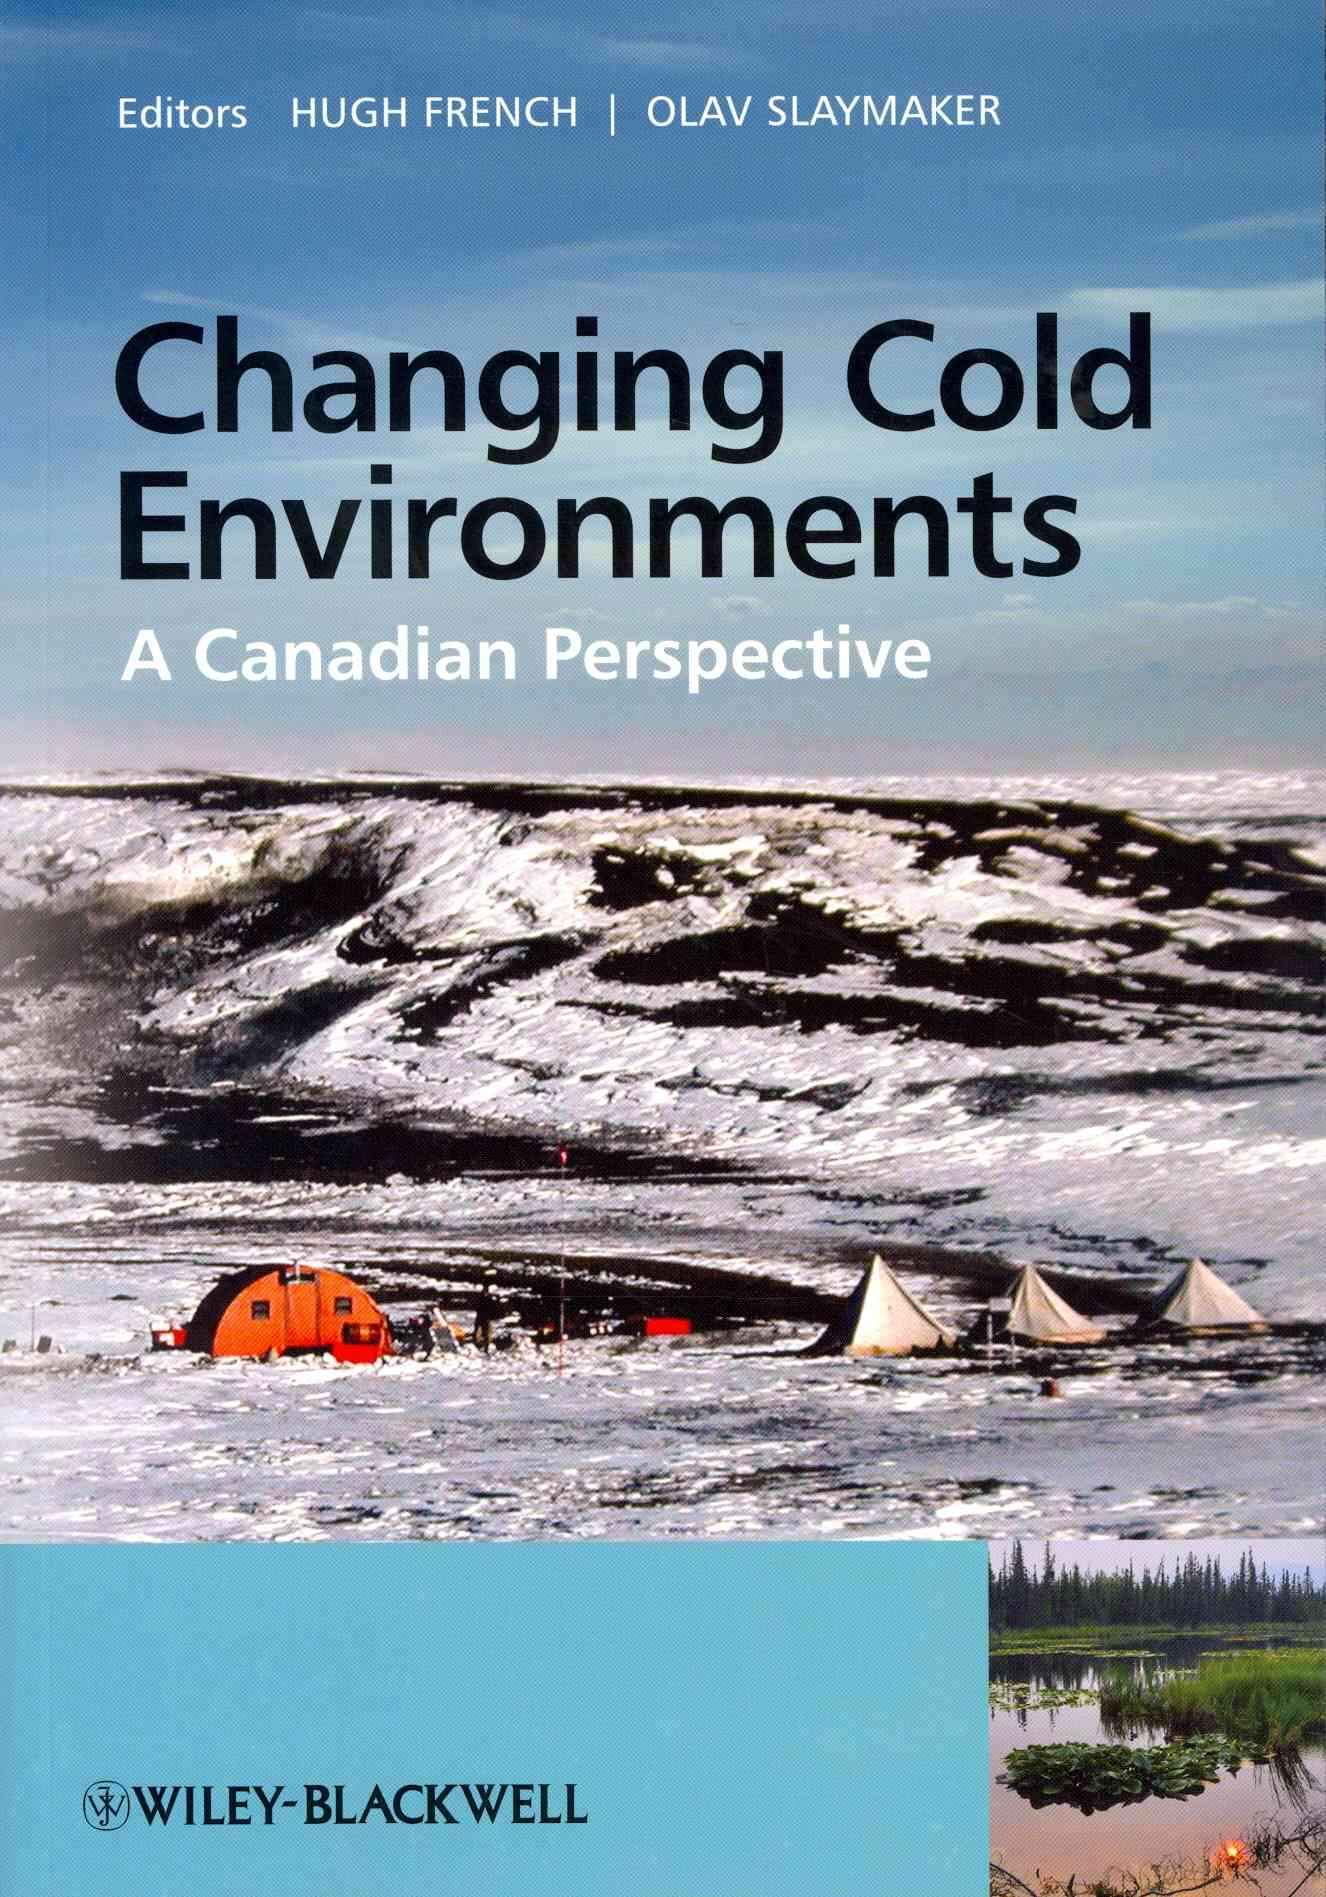 Changing Cold Environments (Paperback)